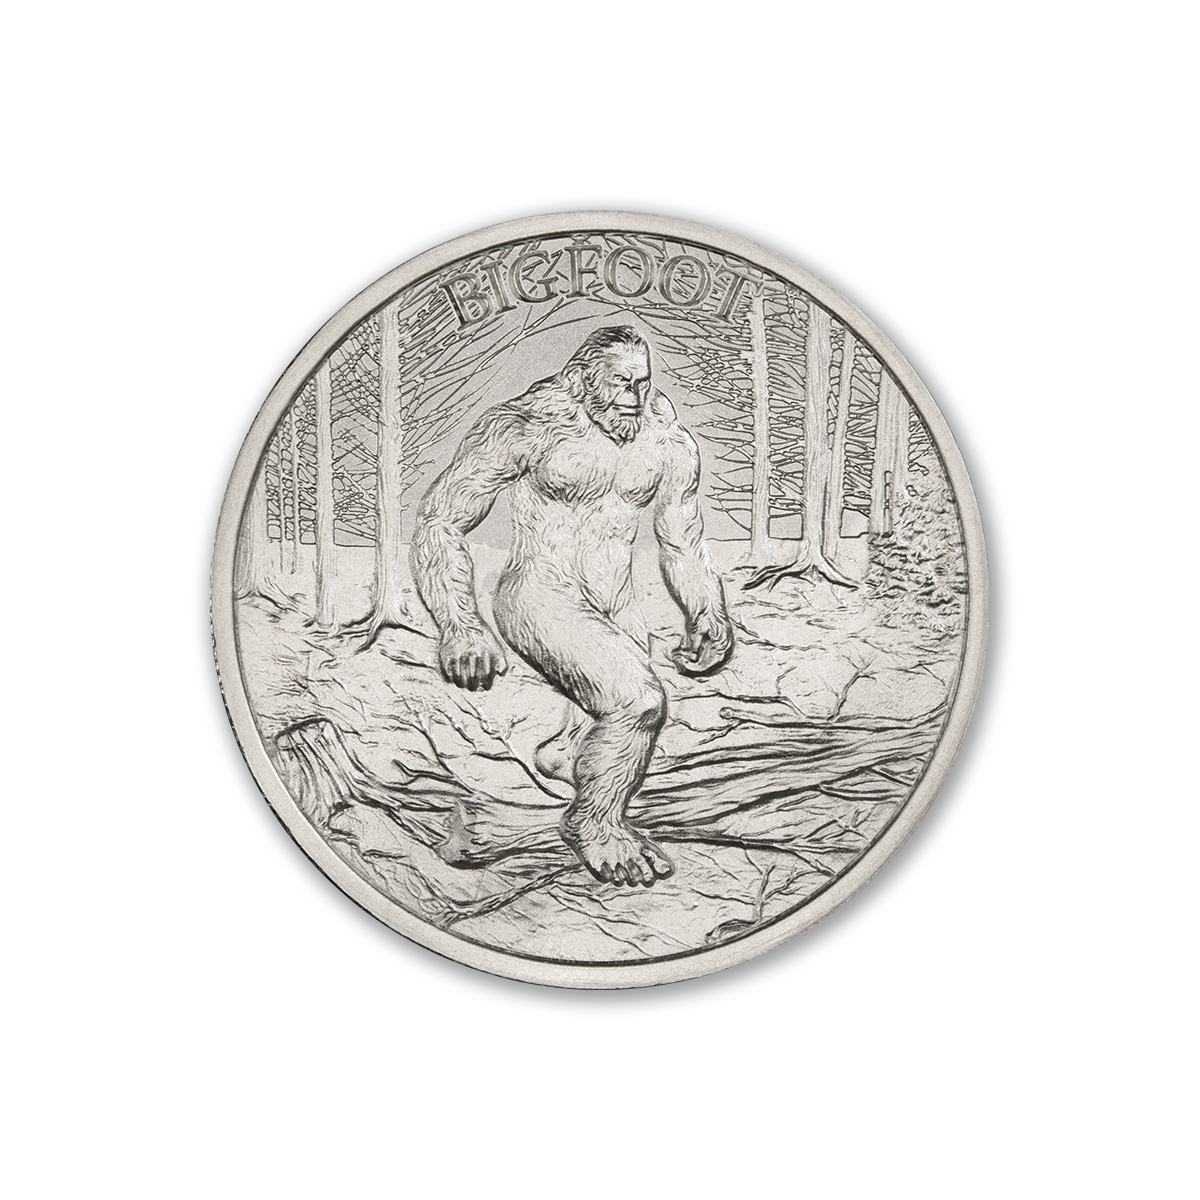 2021 – BIGFOOT – 1 TROY OUNCE – 39MM